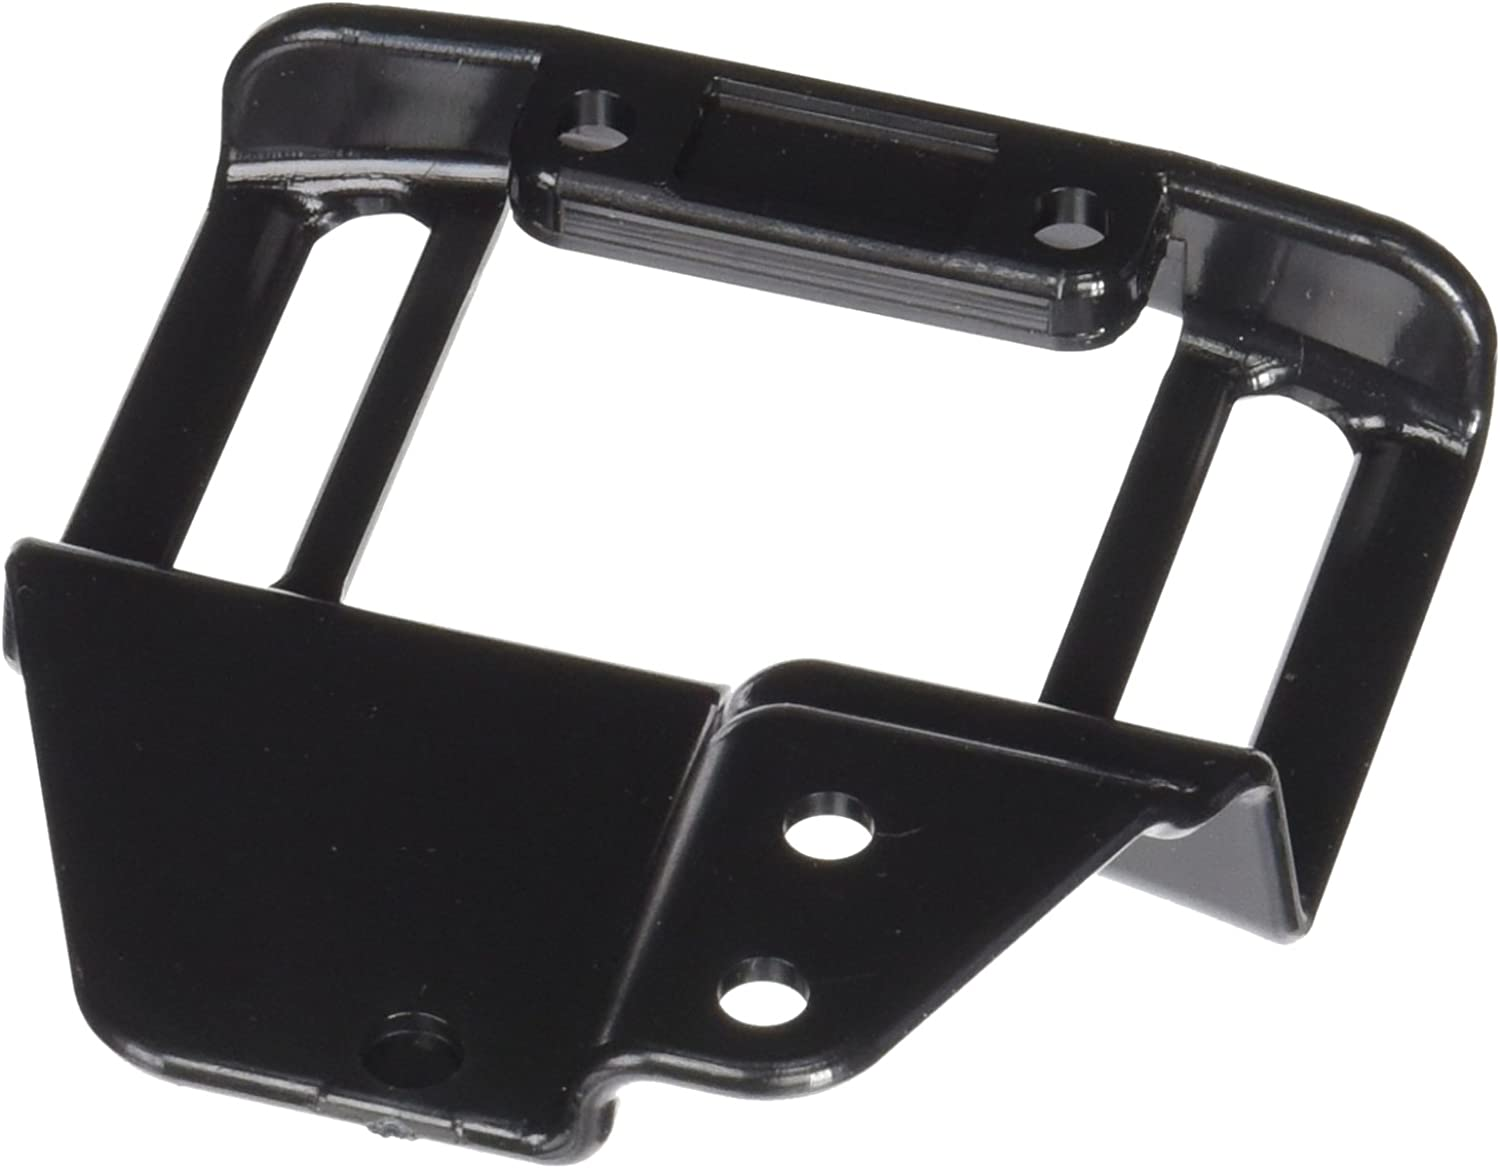 Uncle Mike's Kydex Off-Duty and Concealment Accessory Belt Loop Holster (Black, Left Hand)